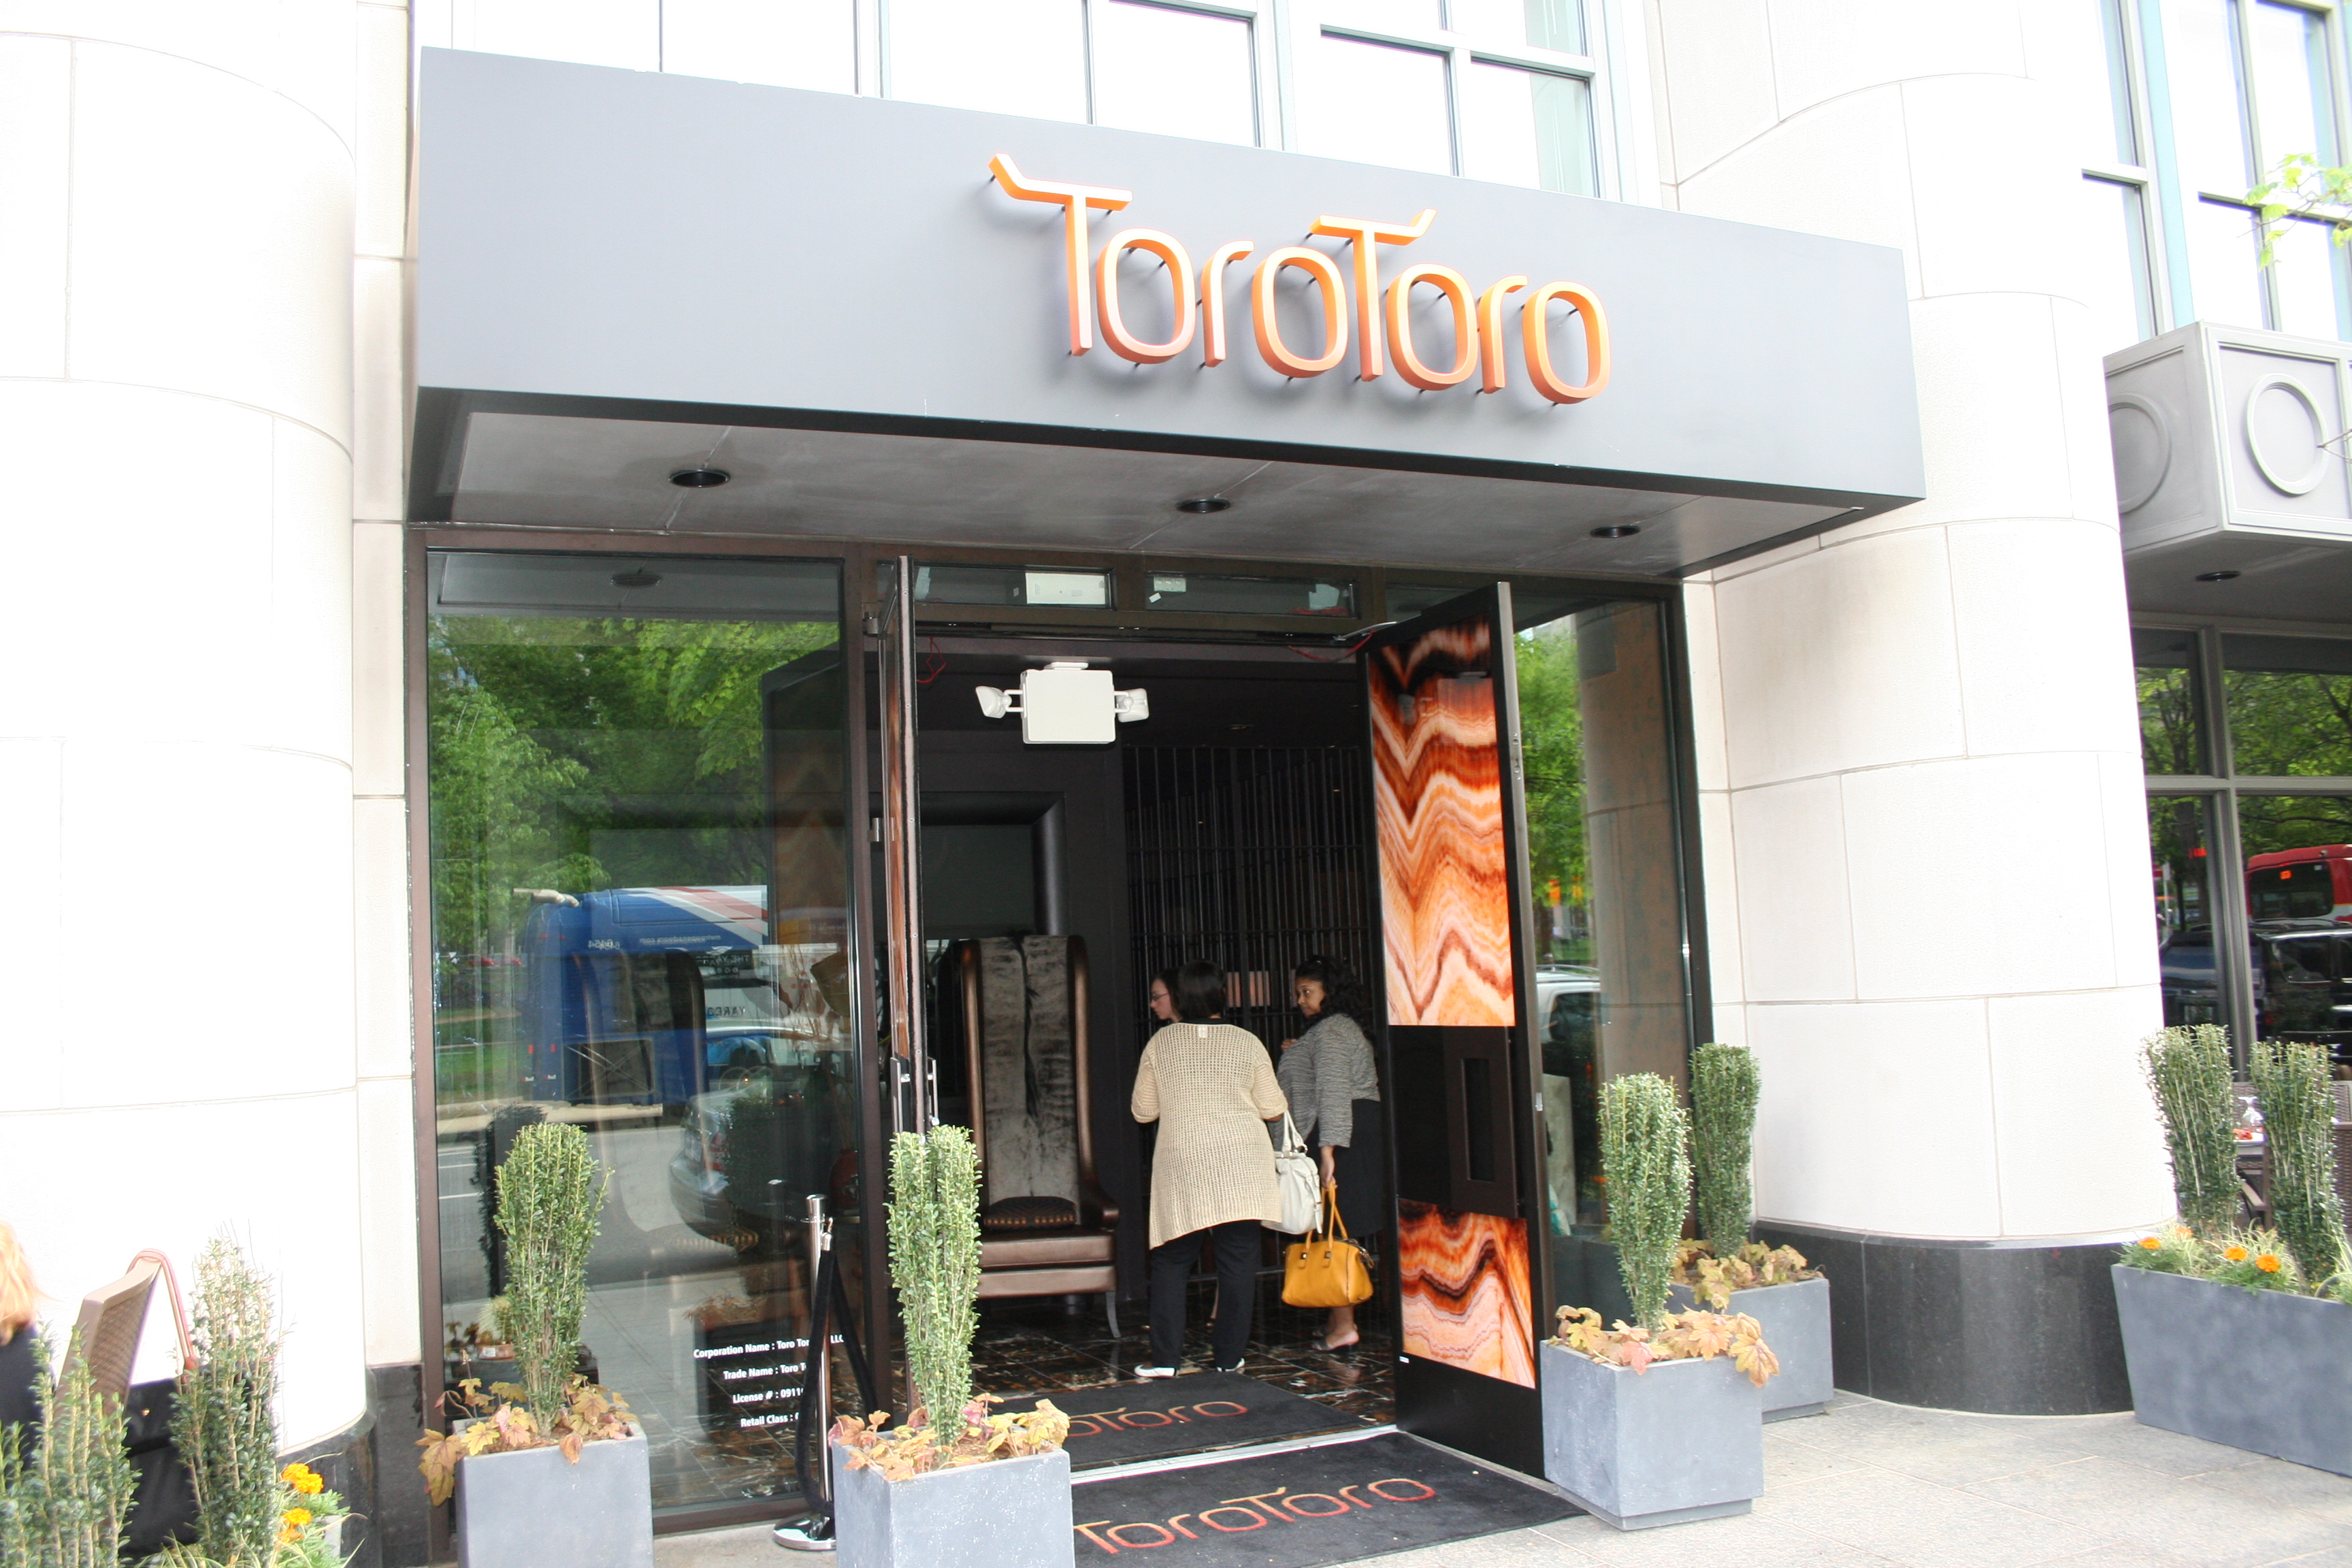 Chef Richard Sandoval's Toro Toro opens at Franklin Square in April. (Photo: Mark Heckathorn/DC on Heels)